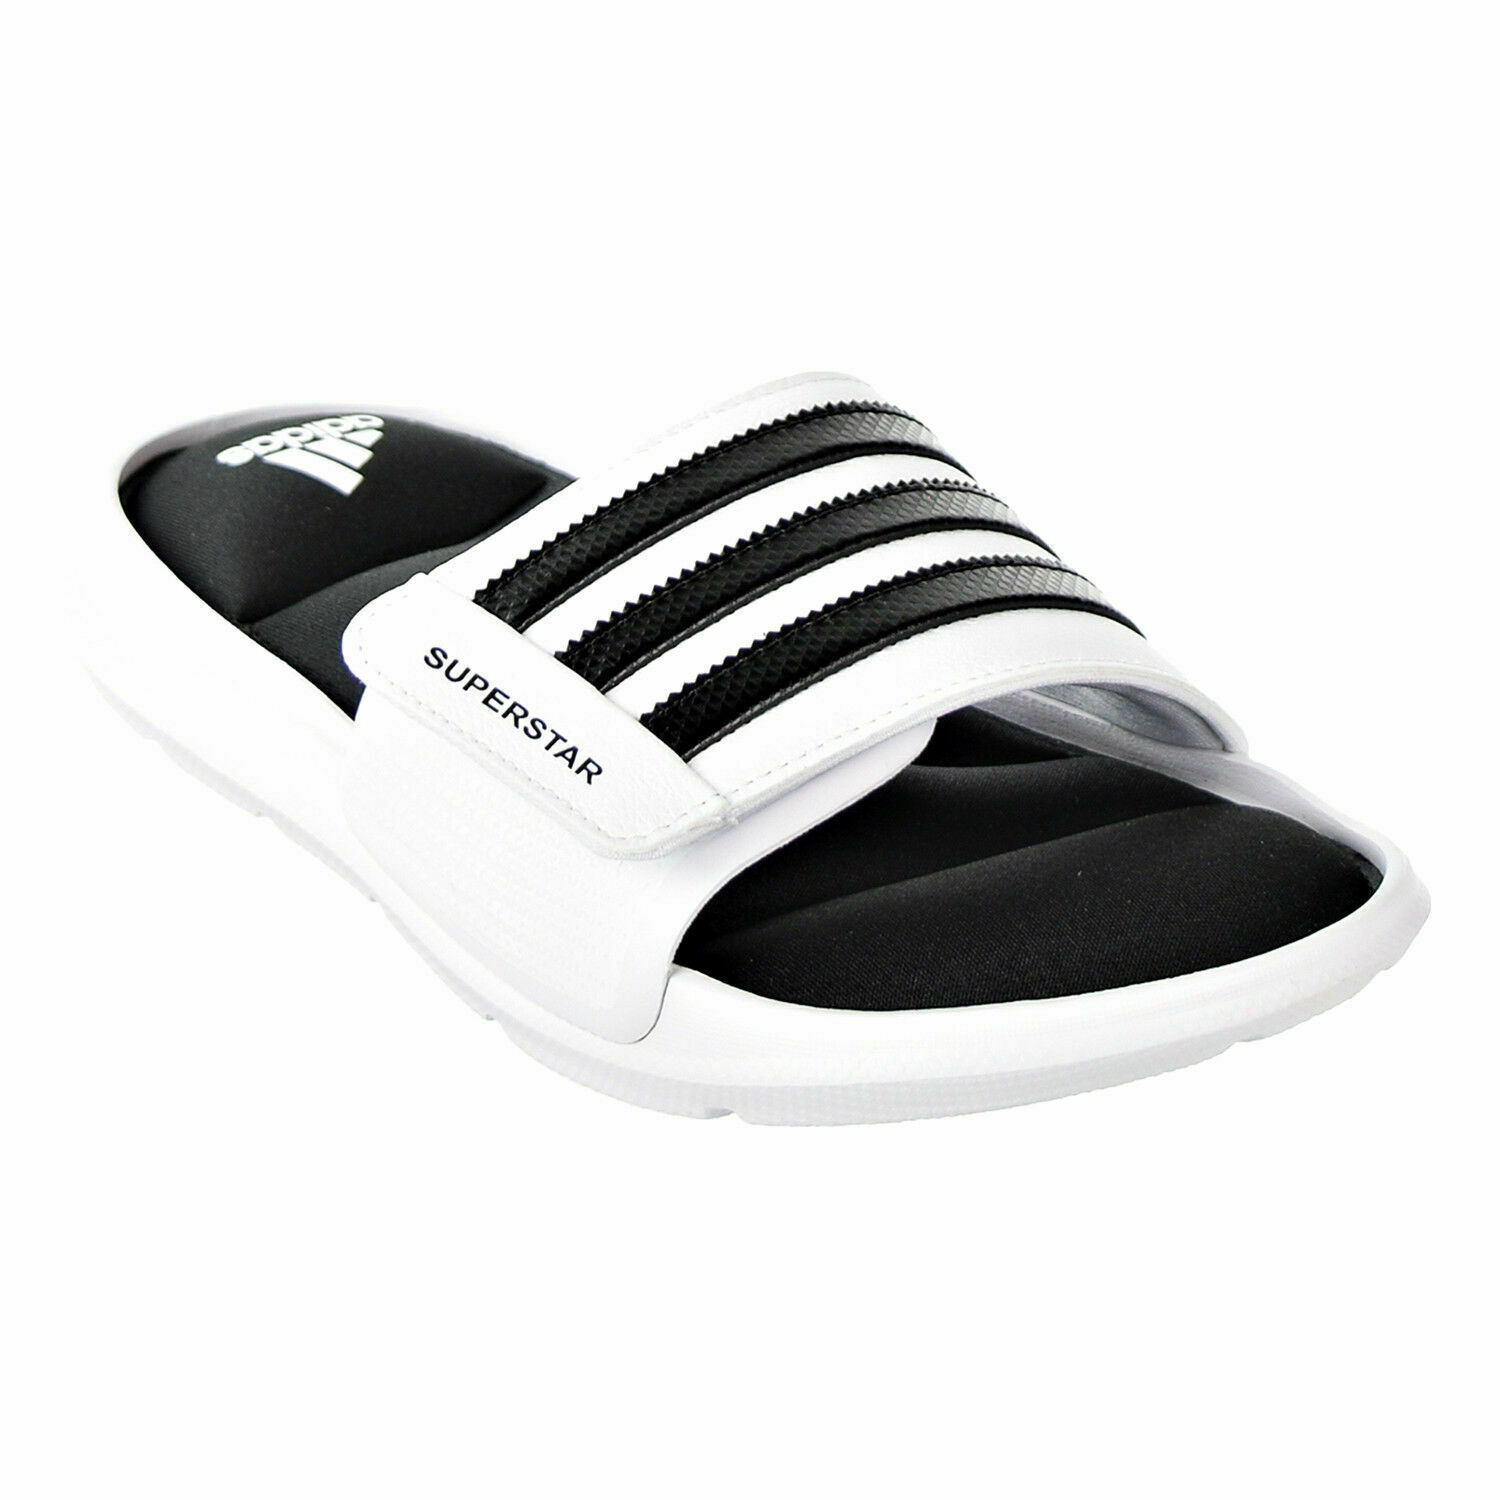 ADIDAS SUPERSTAR SURROUND MEMORY FOAM SLIDE SANDALS MEN SHOES MILK SIZE 15 NEW